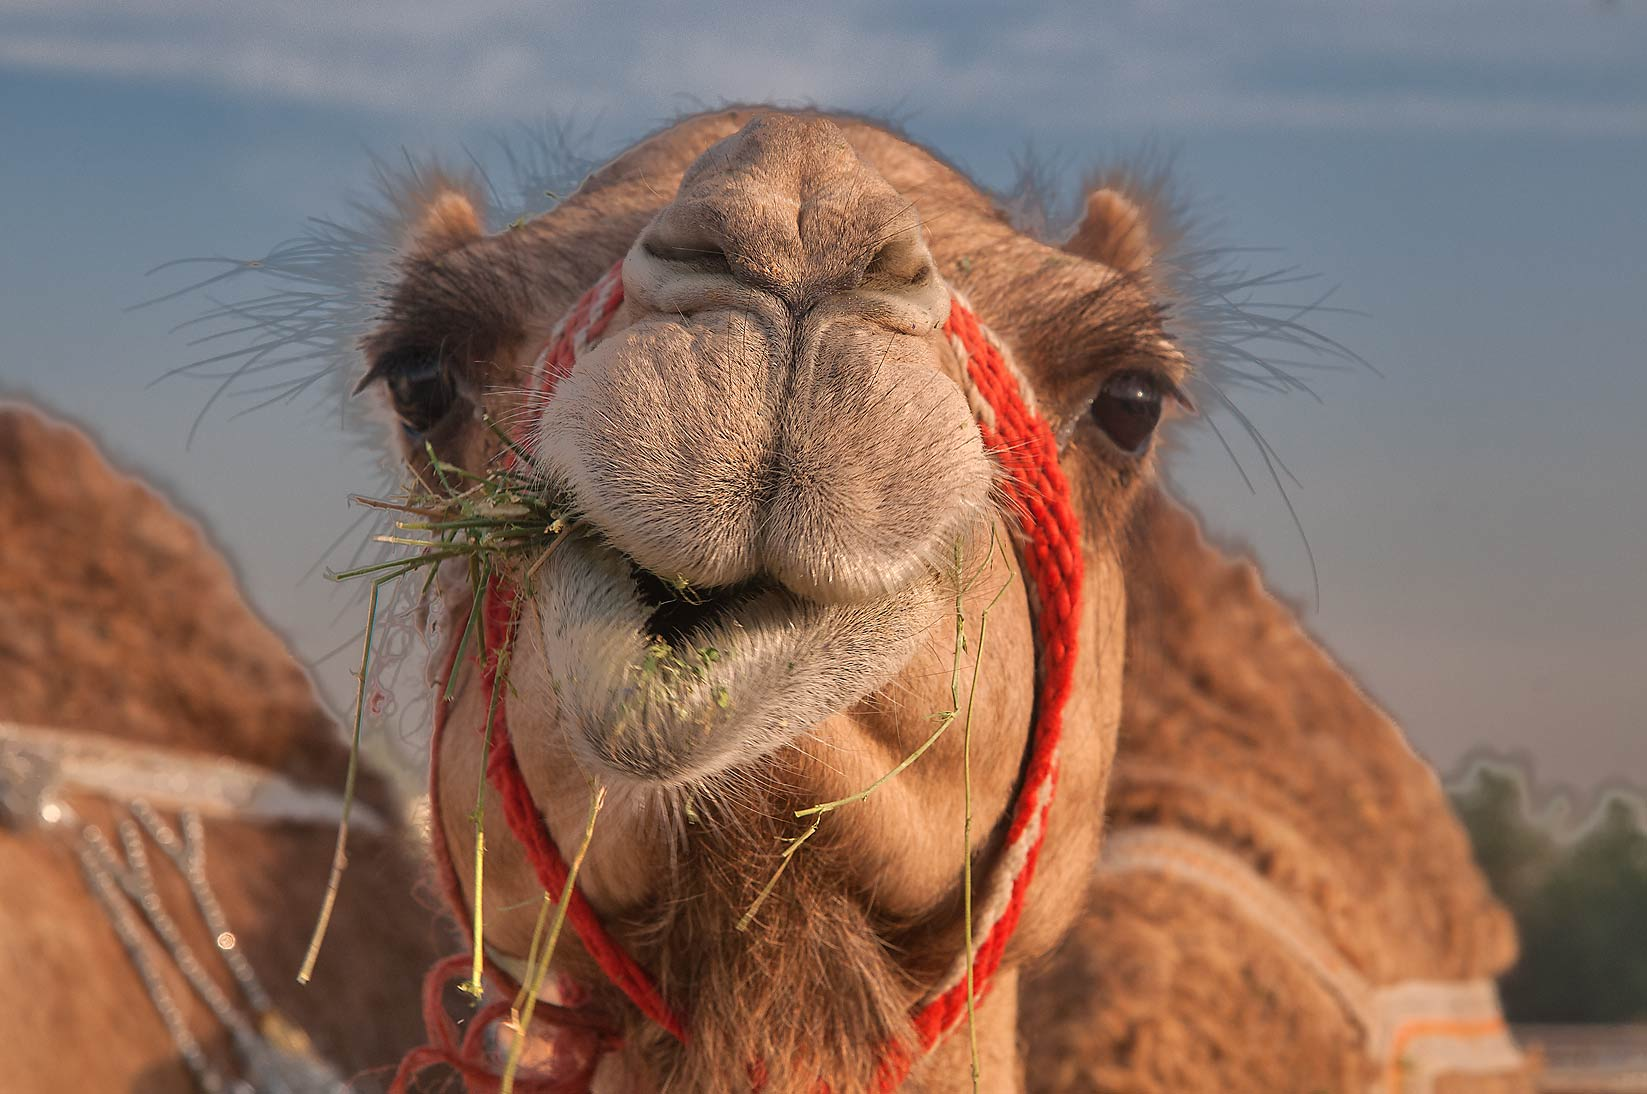 Camel chewing hay in Livestock Market, Wholesale Markets area. Doha, Qatar